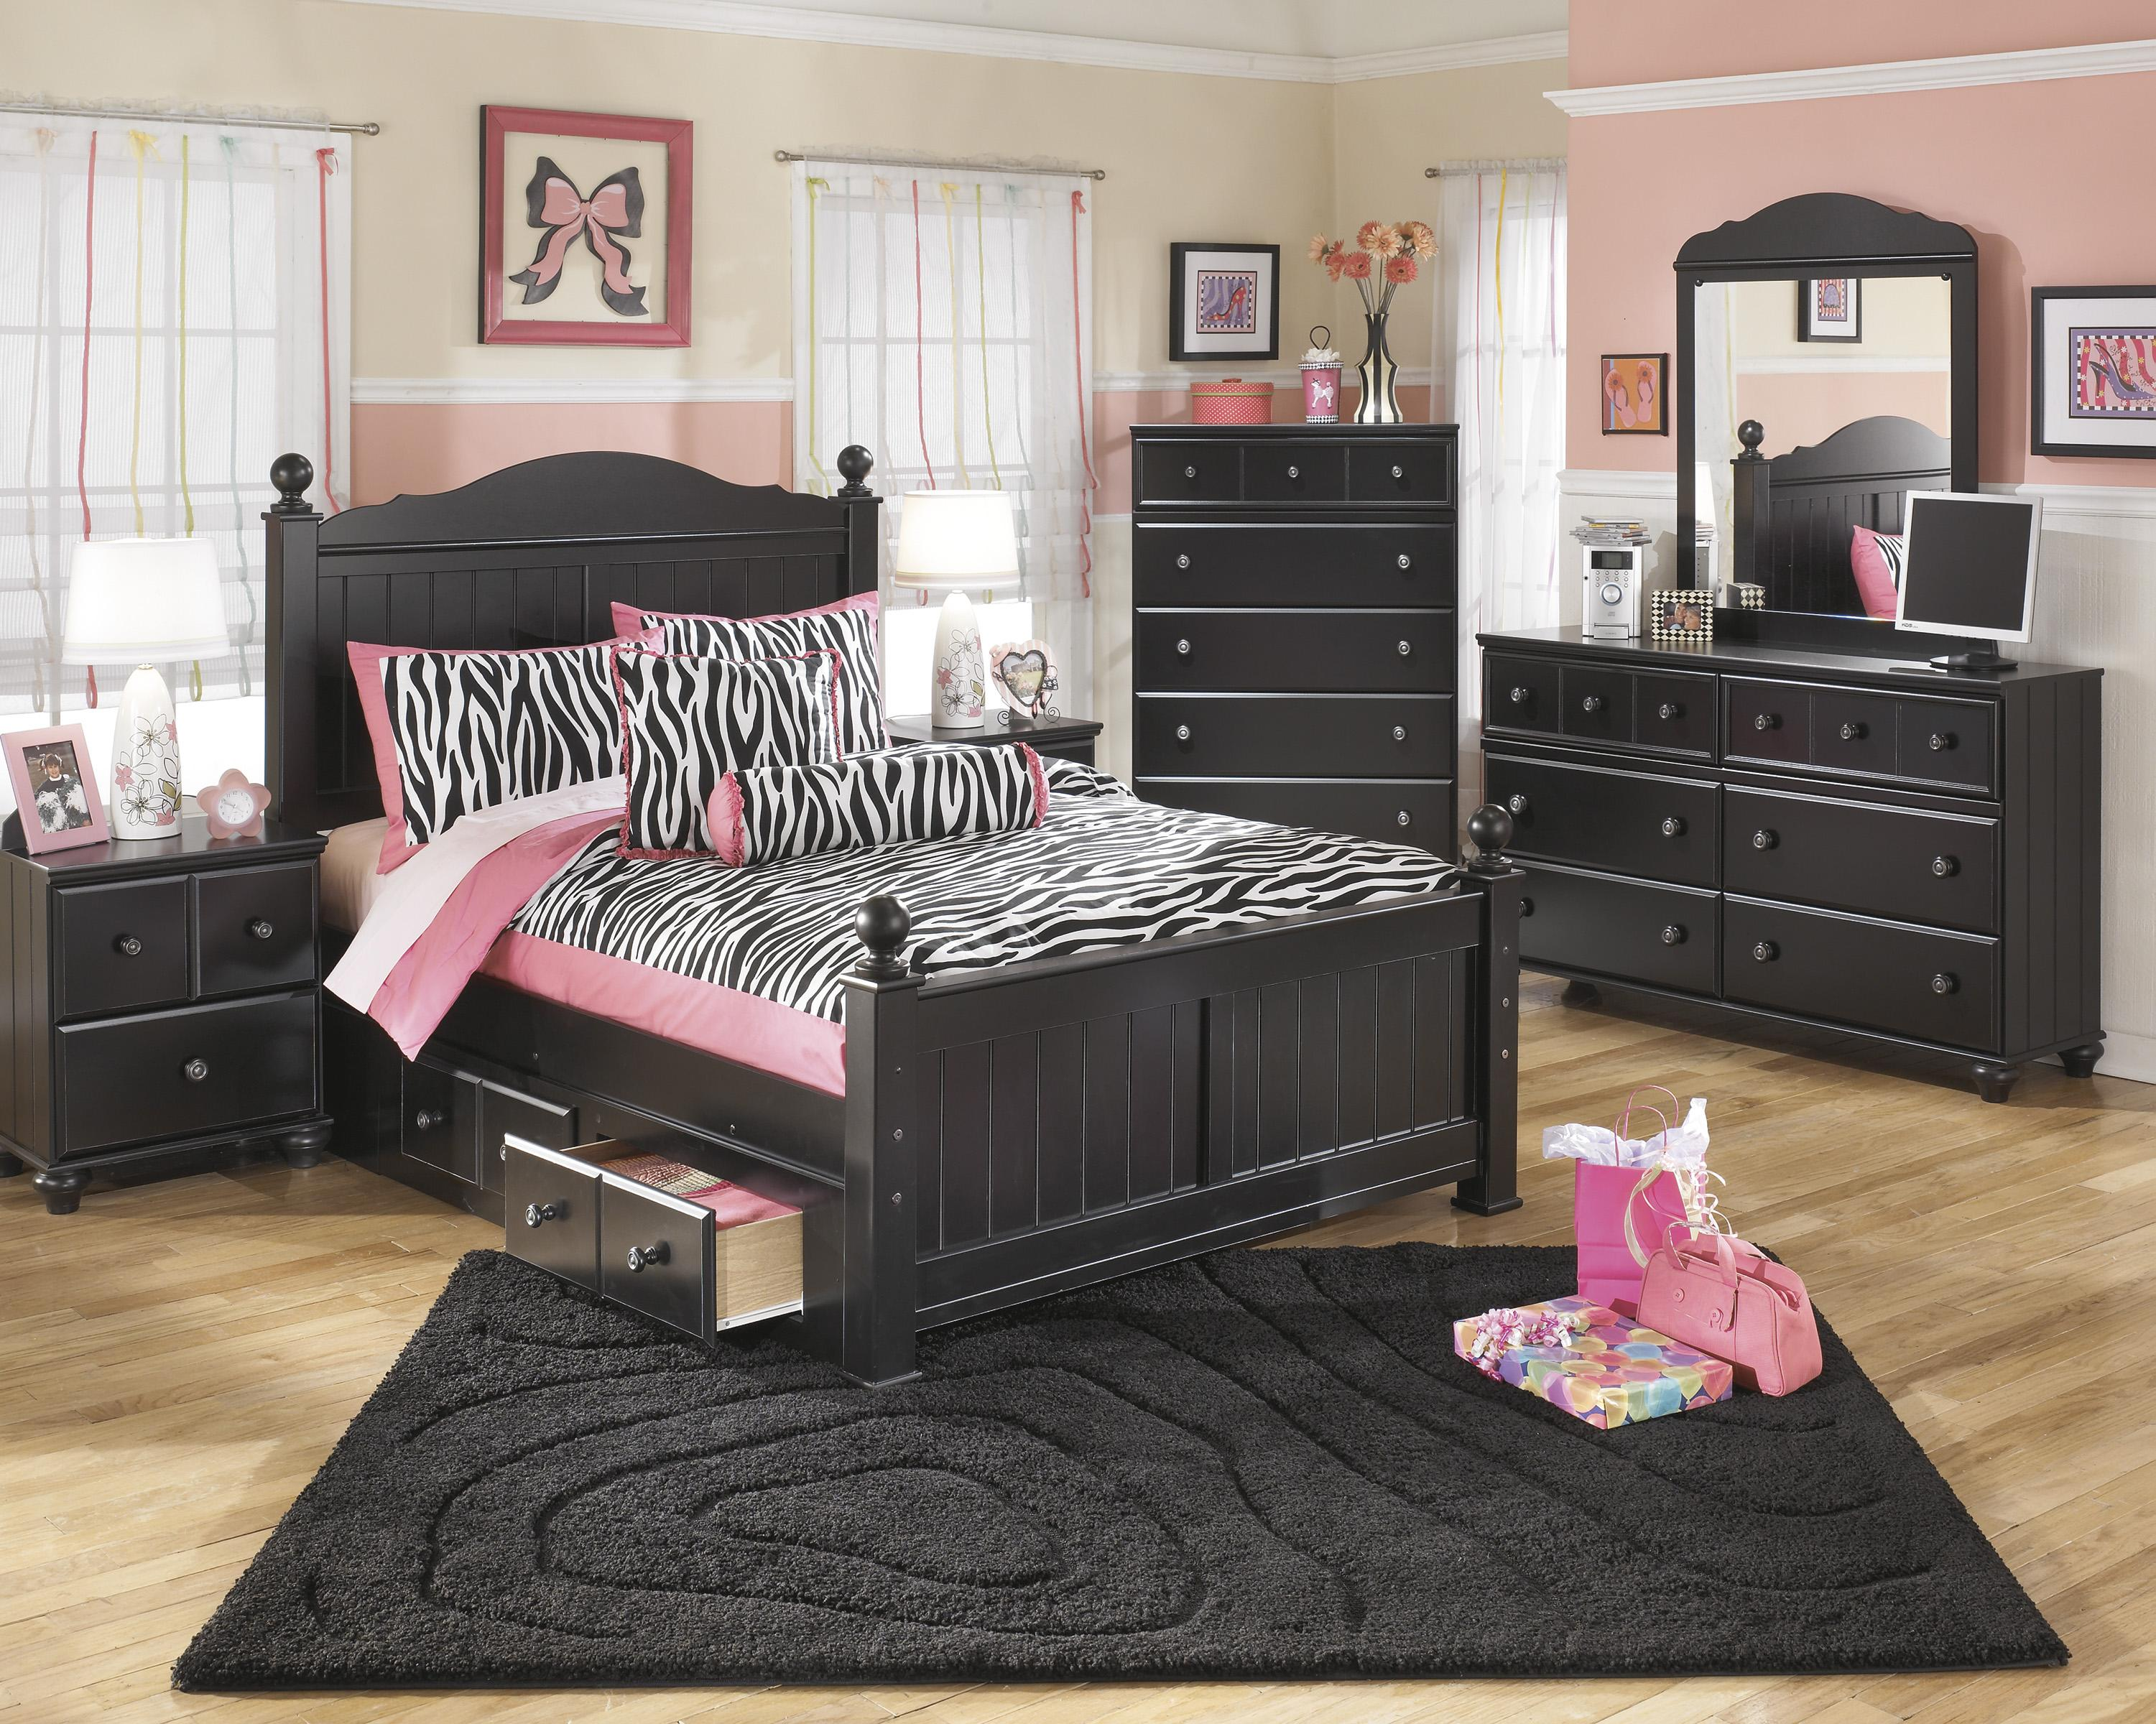 Signature Design by Ashley Jaidyn Full Bedroom Group - Item Number: B150 F Bedroom Group 3